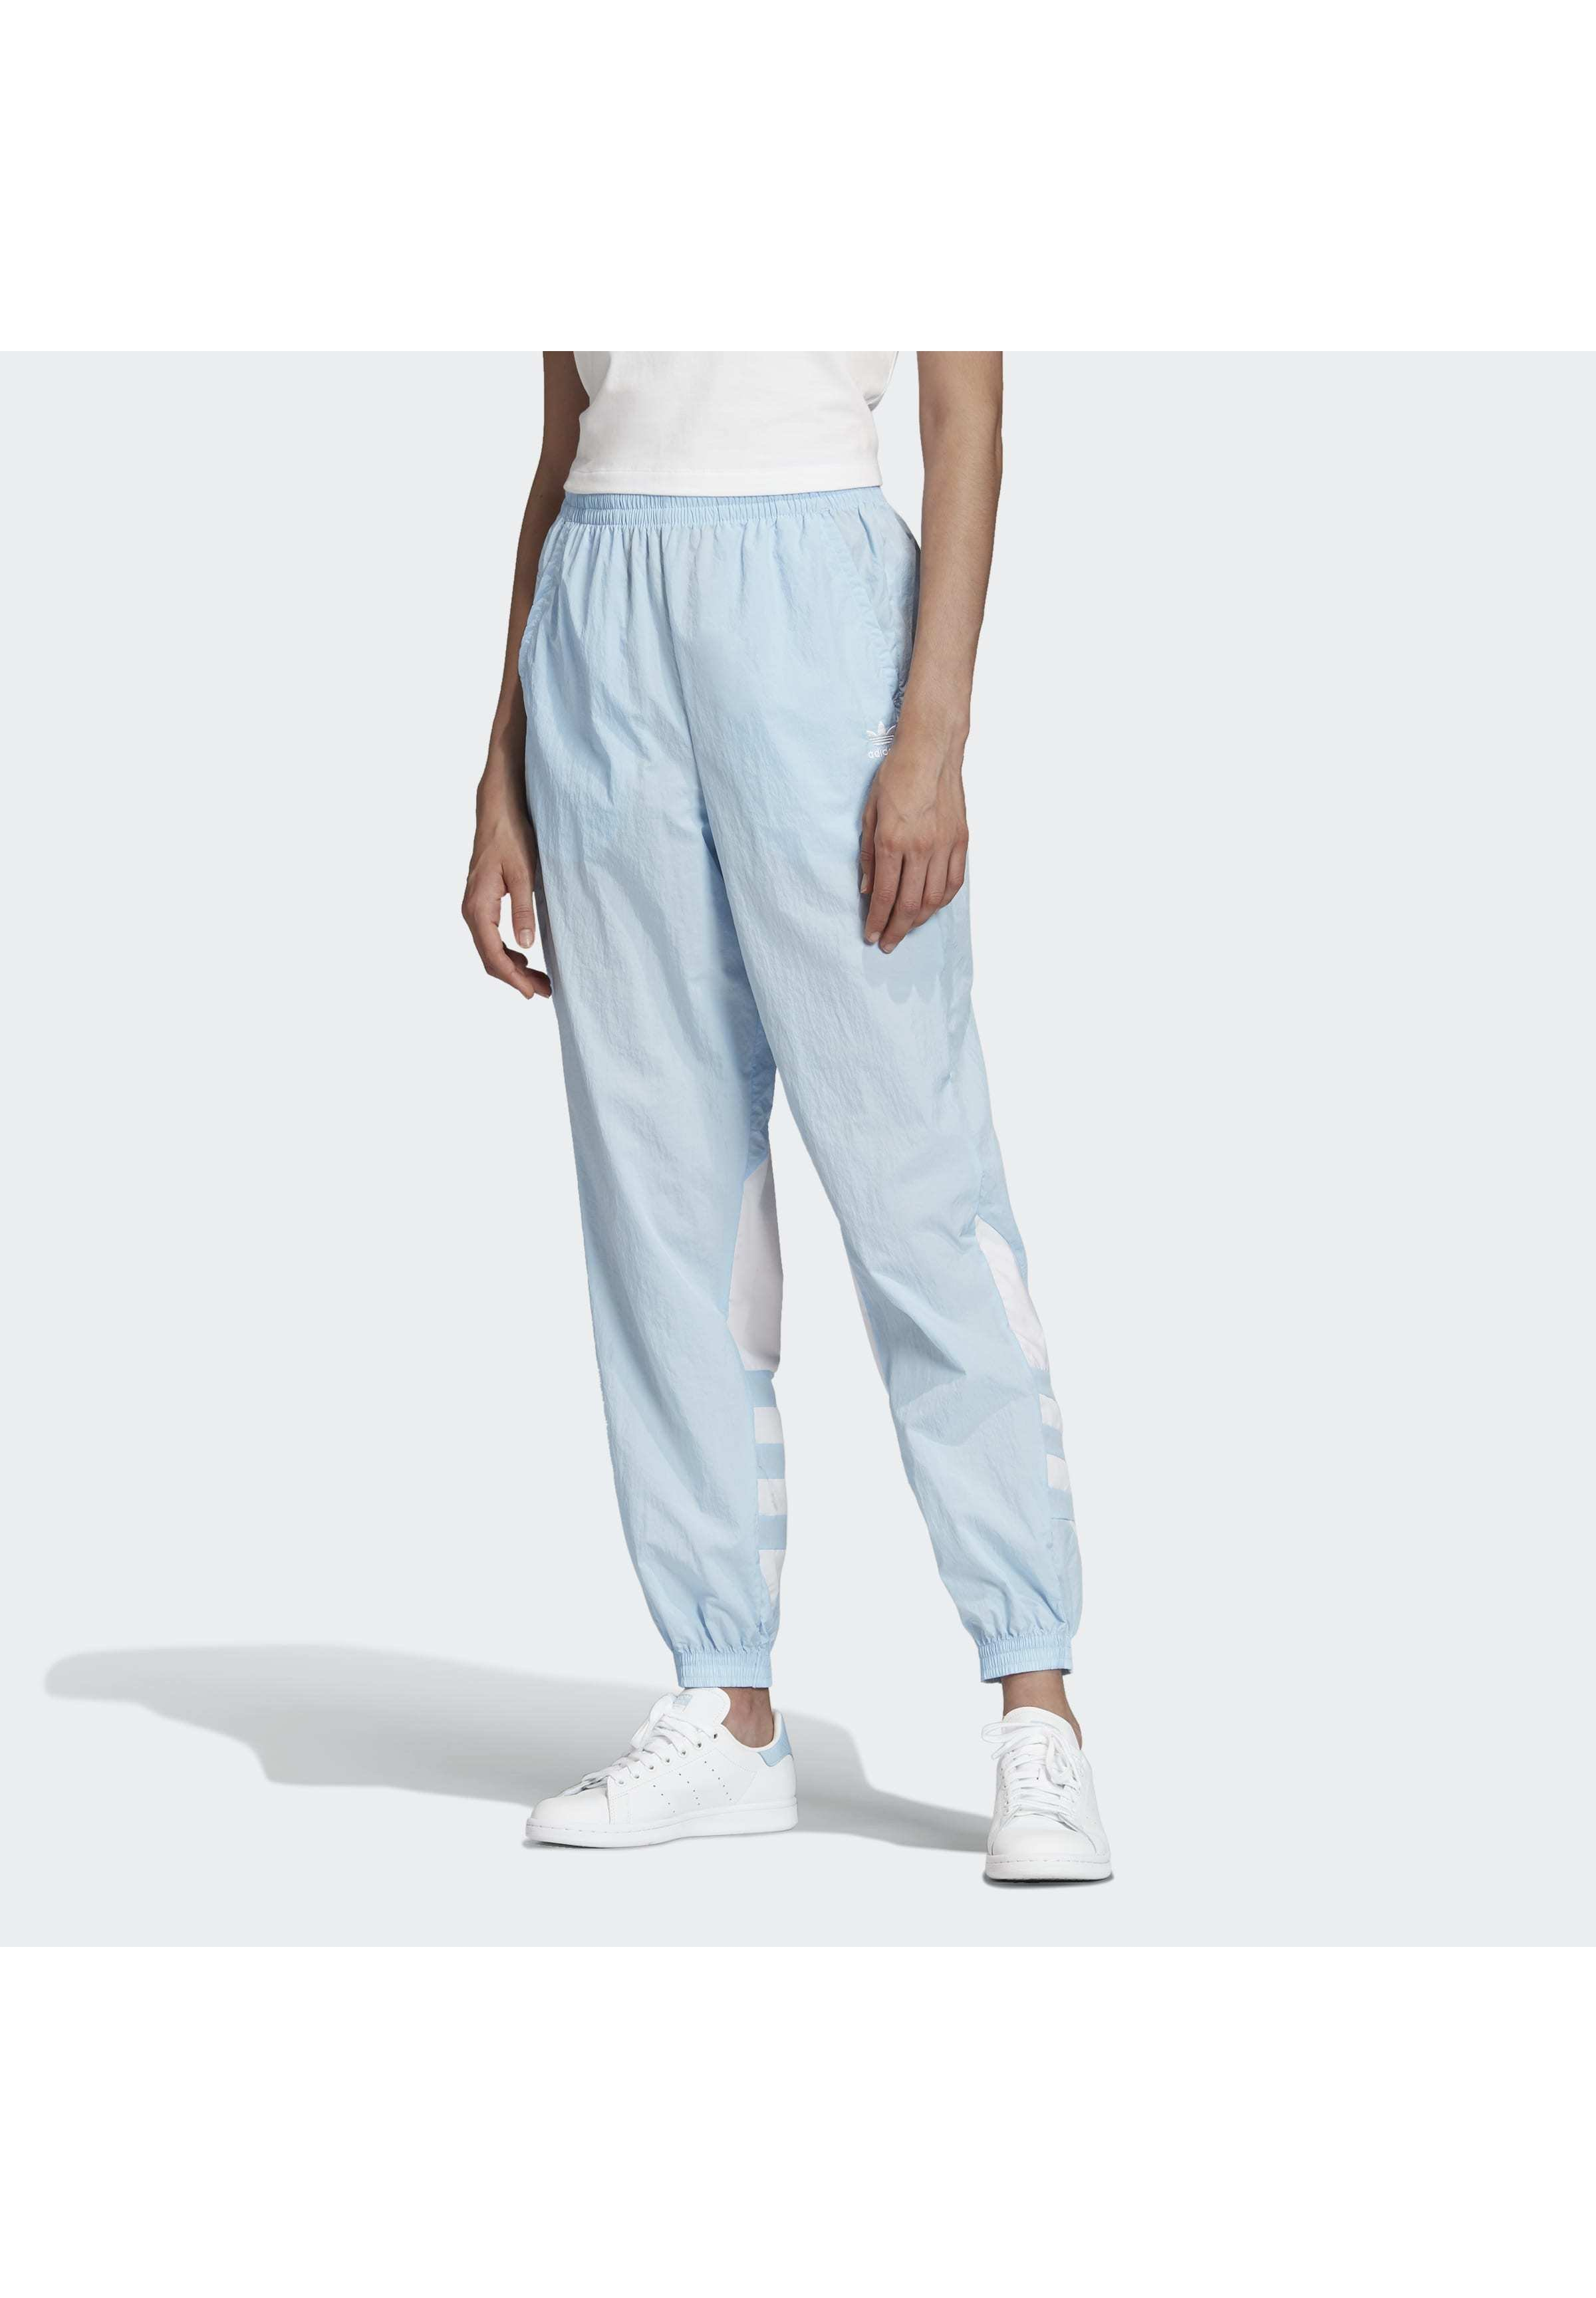 adidas Originals 2020-02-15 BIG LOGO TRACKSUIT BOTTOMS - Pantalon de survêtement - blue - Pantalons & Leggings Femme I7Gkr